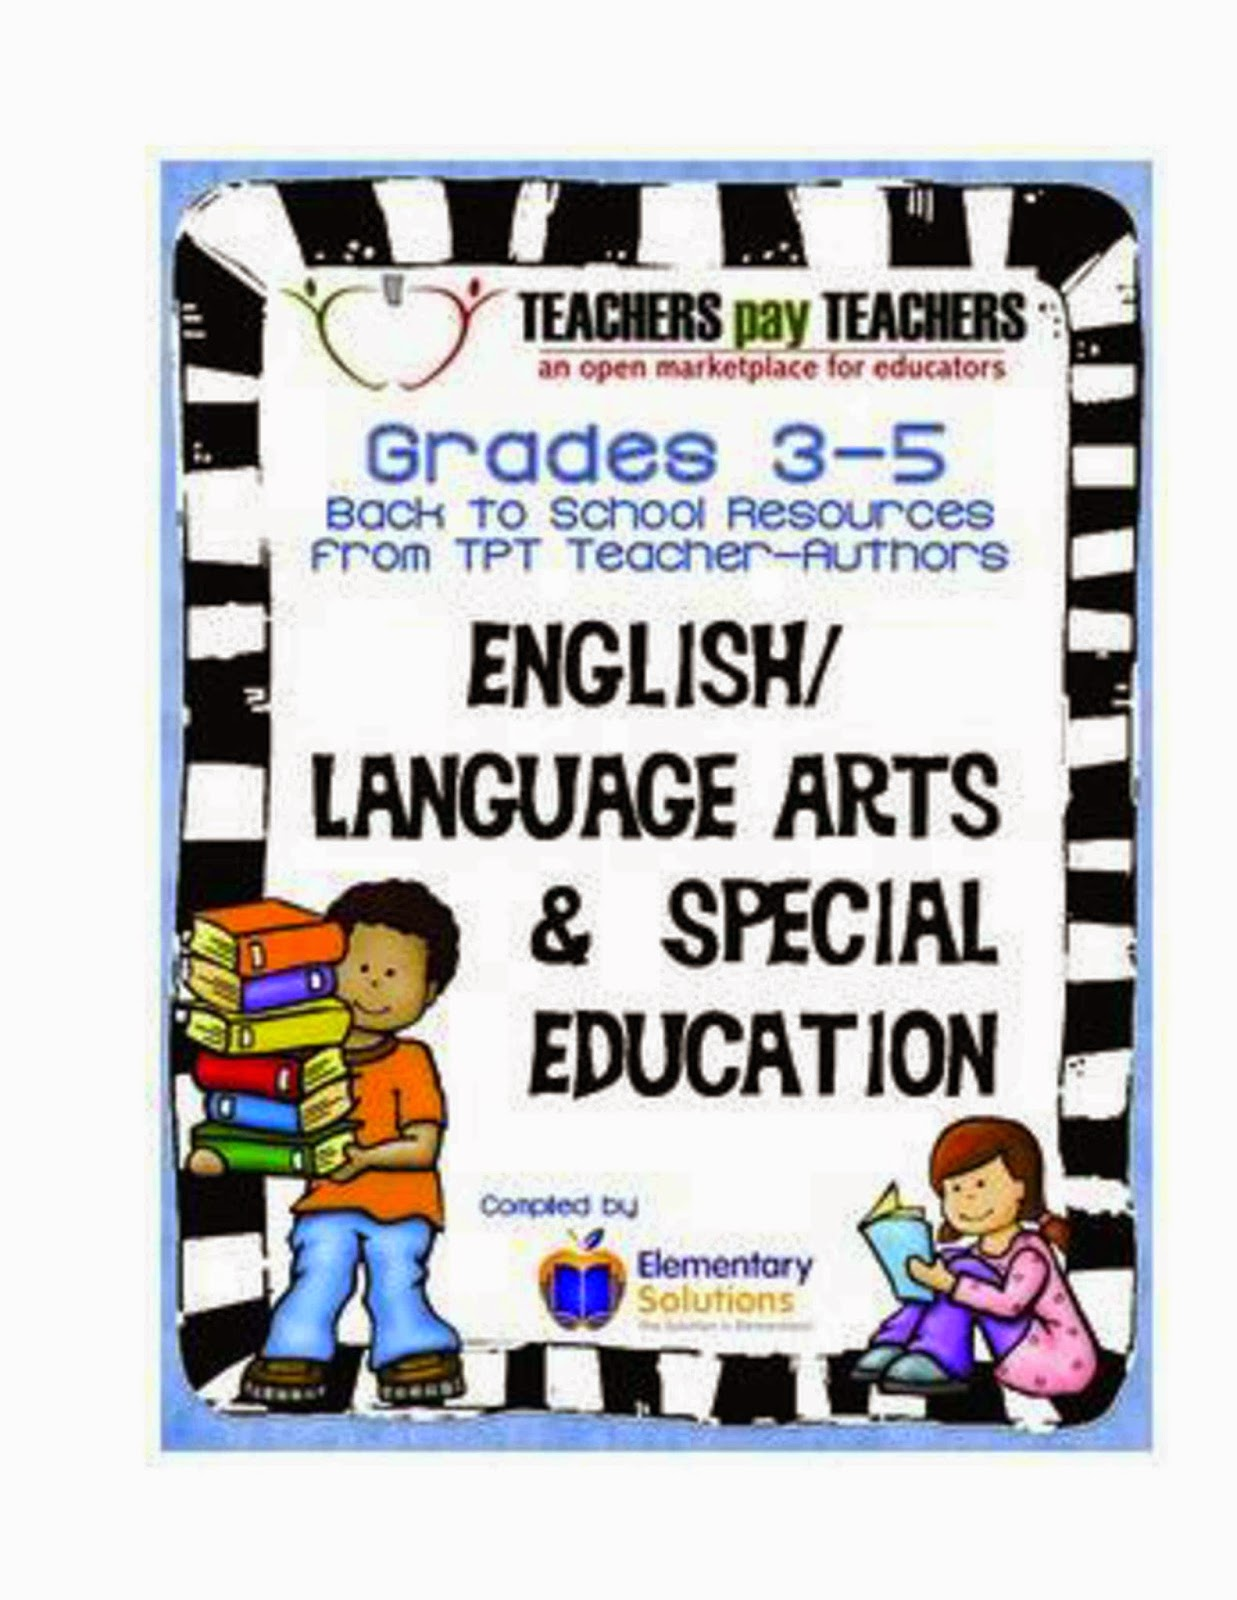 http://www.teacherspayteachers.com/Product/Grades-3-5-English-Language-Arts-Back-to-School-E-Book-2014-2015-1376922